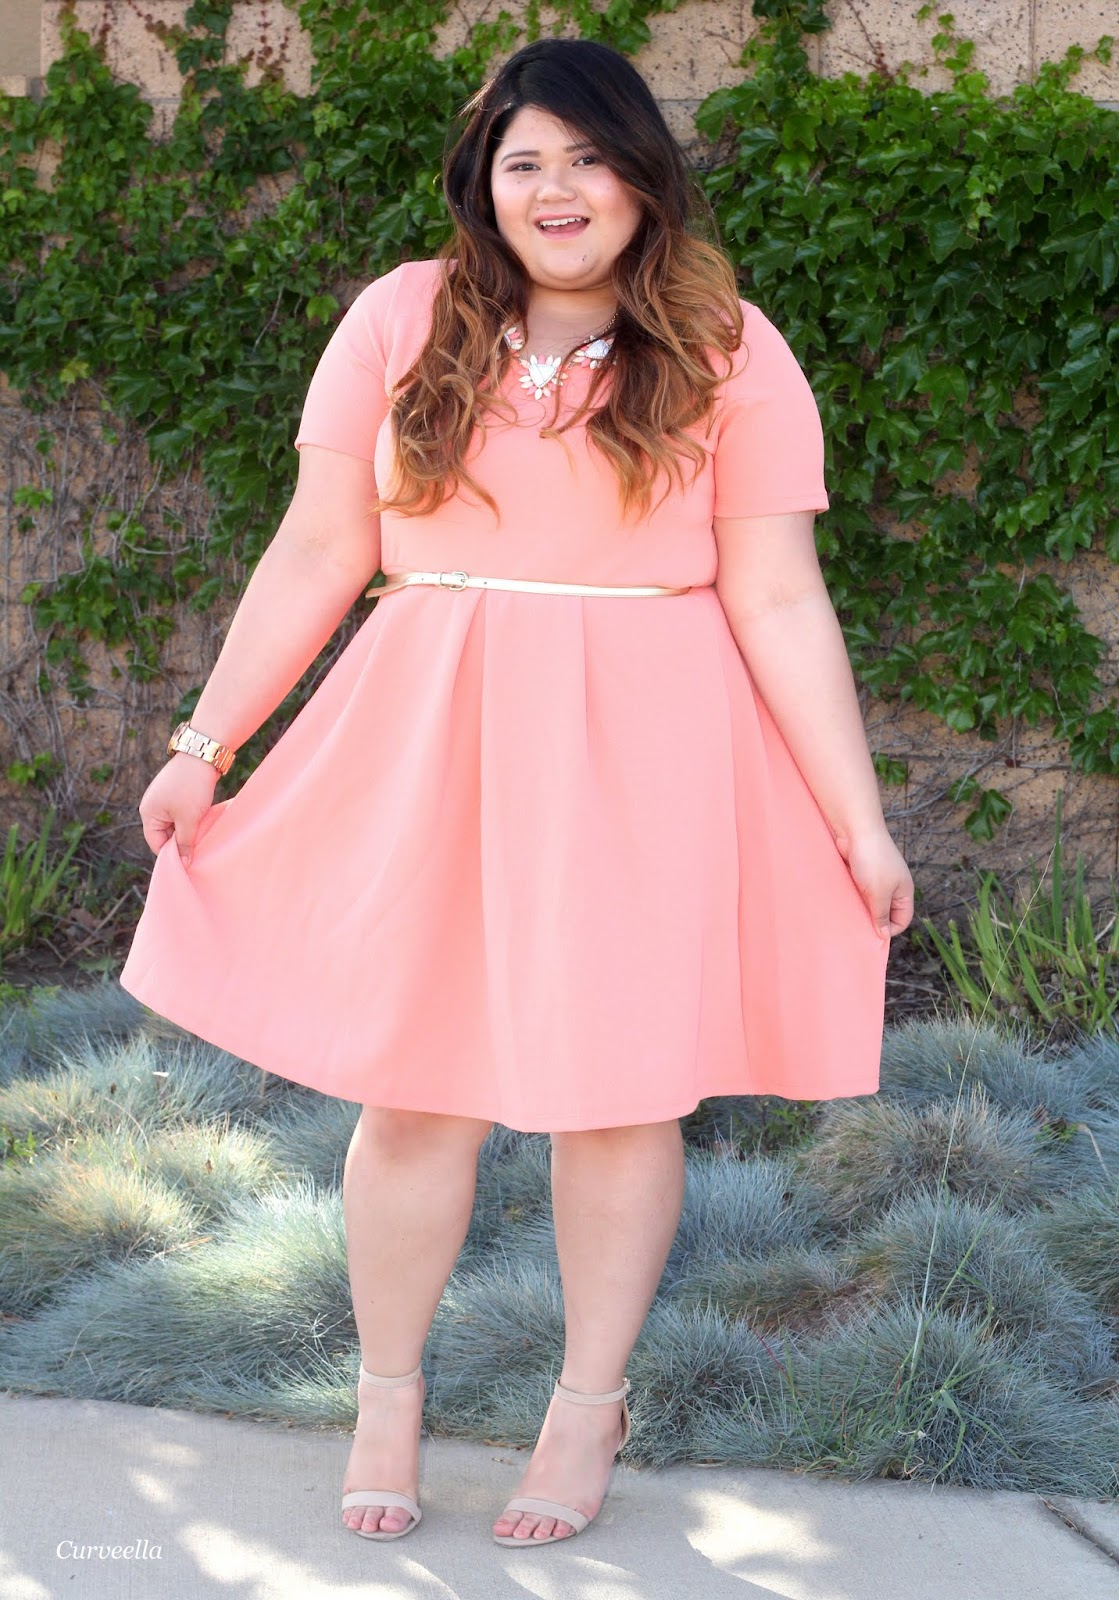 Plus Size Clothing Up To 36 - Style Clothes Trends